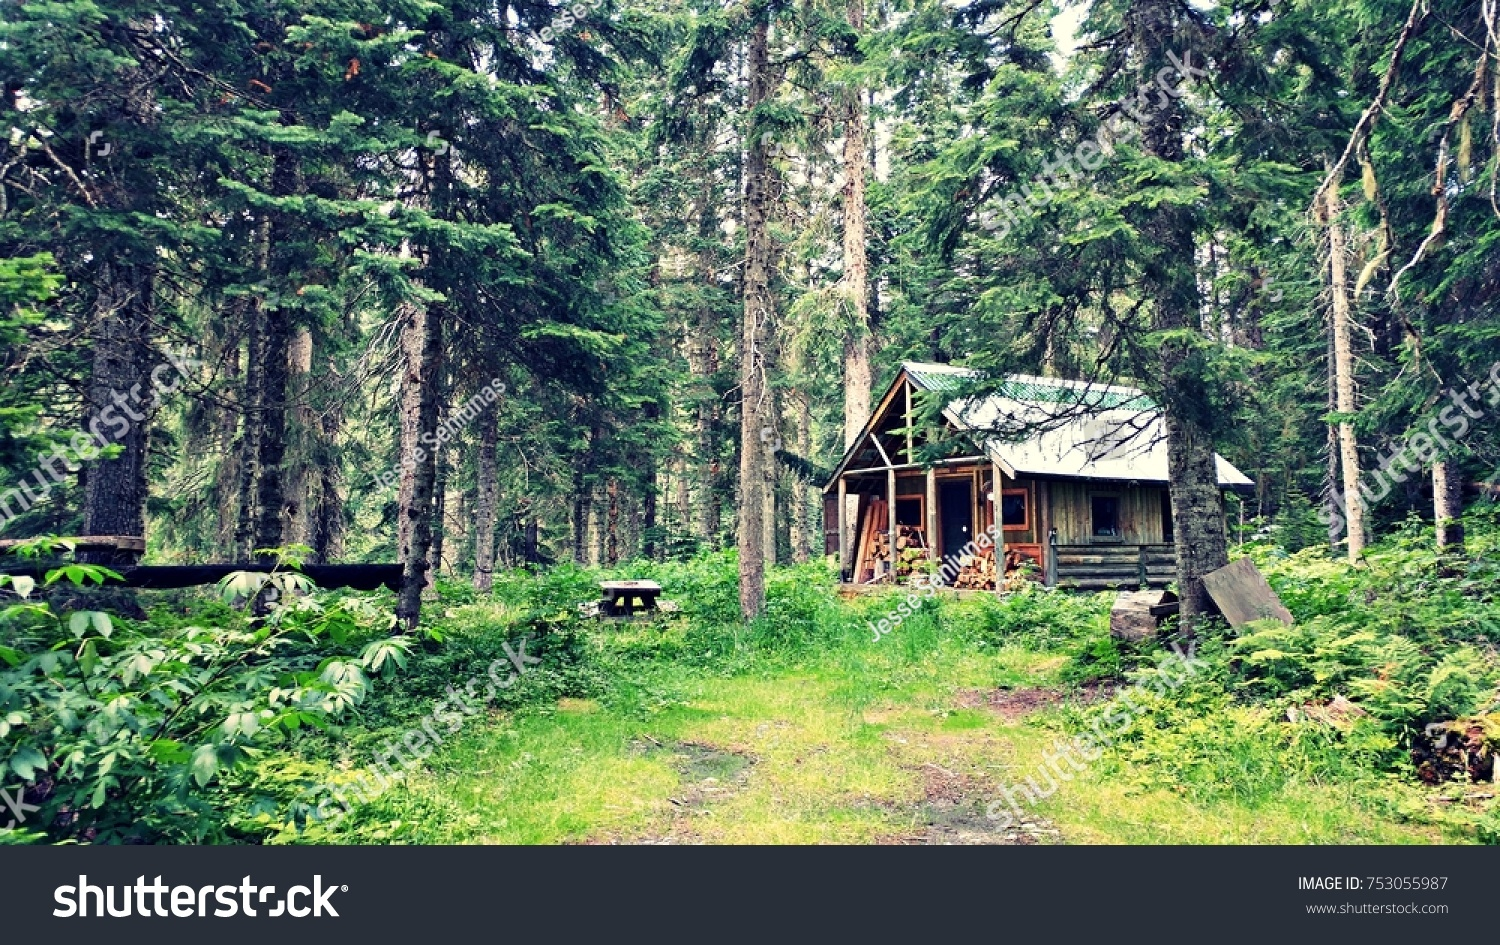 A secluded cabin in the woods. #753055987